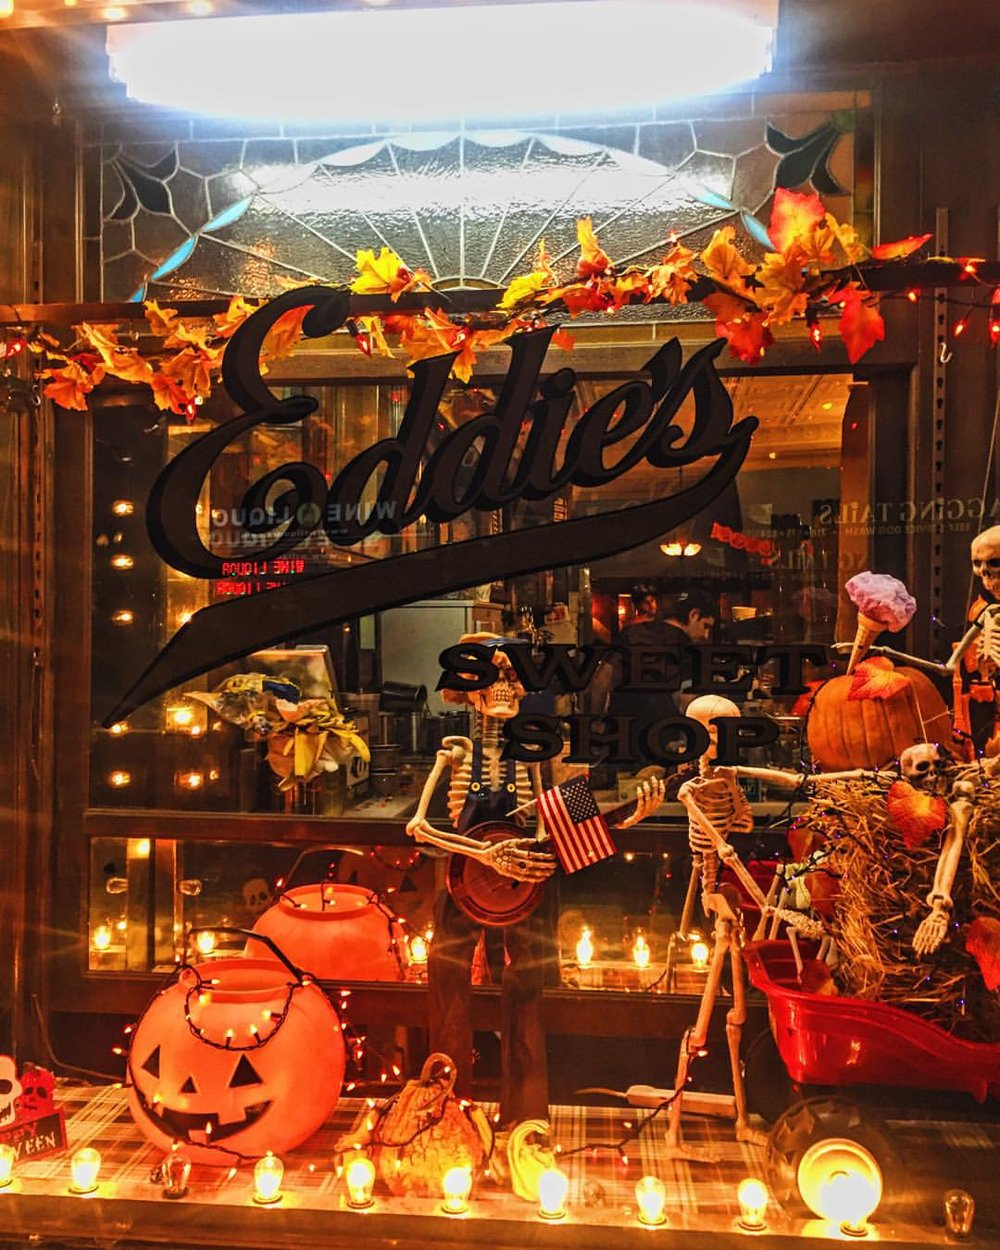 Eddies Sweet Shop in Forest Hills is all decorated for Halloween!